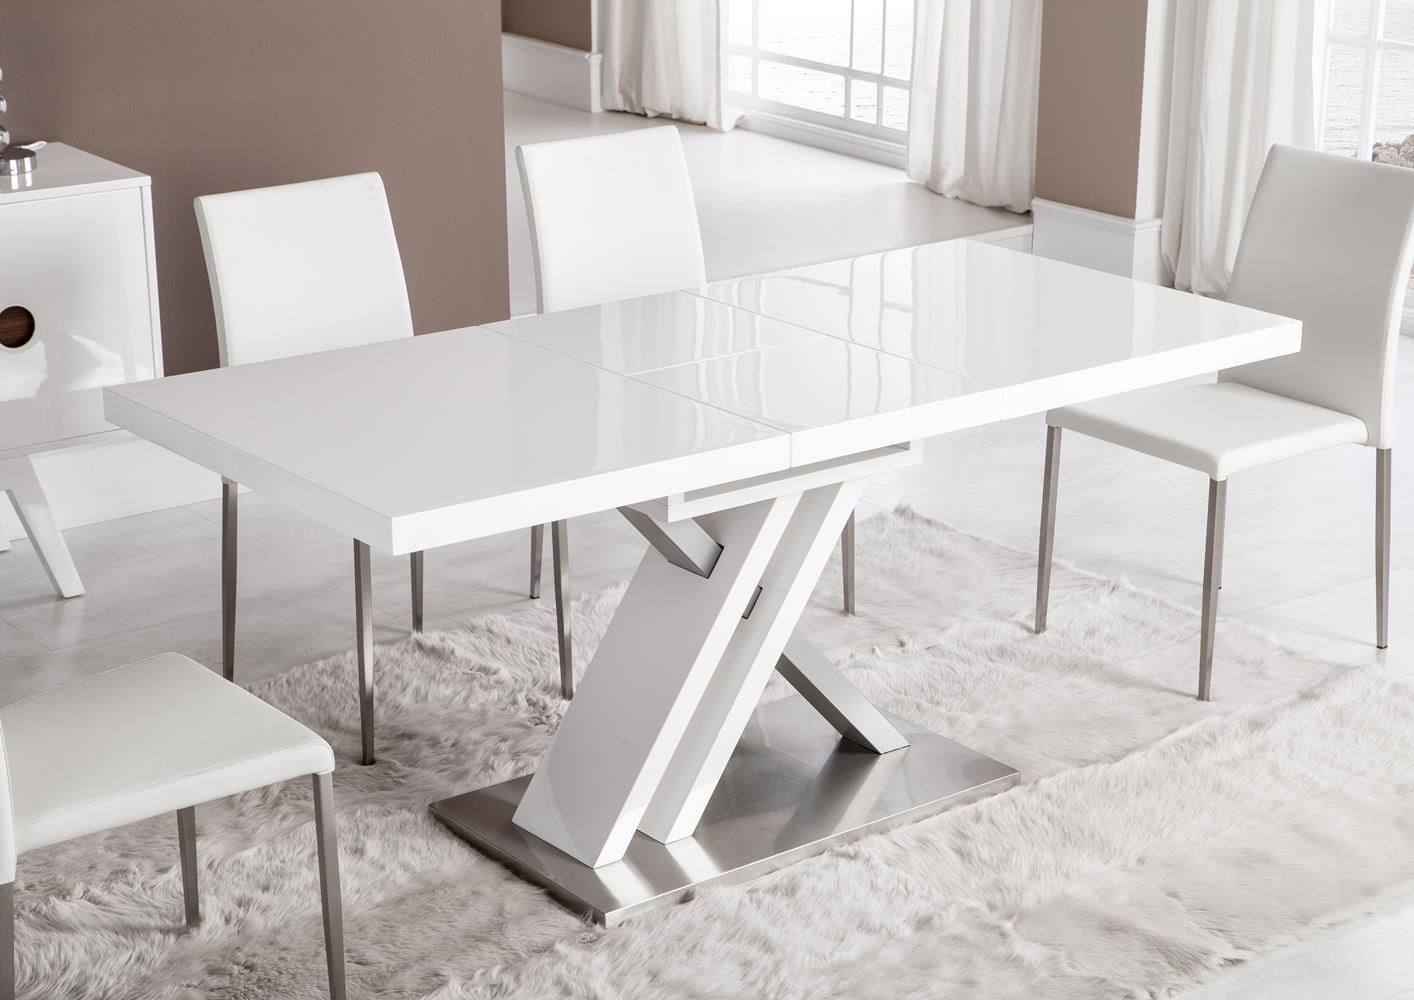 Table laque blanc pied central meuble de salon contemporain for Table pied central